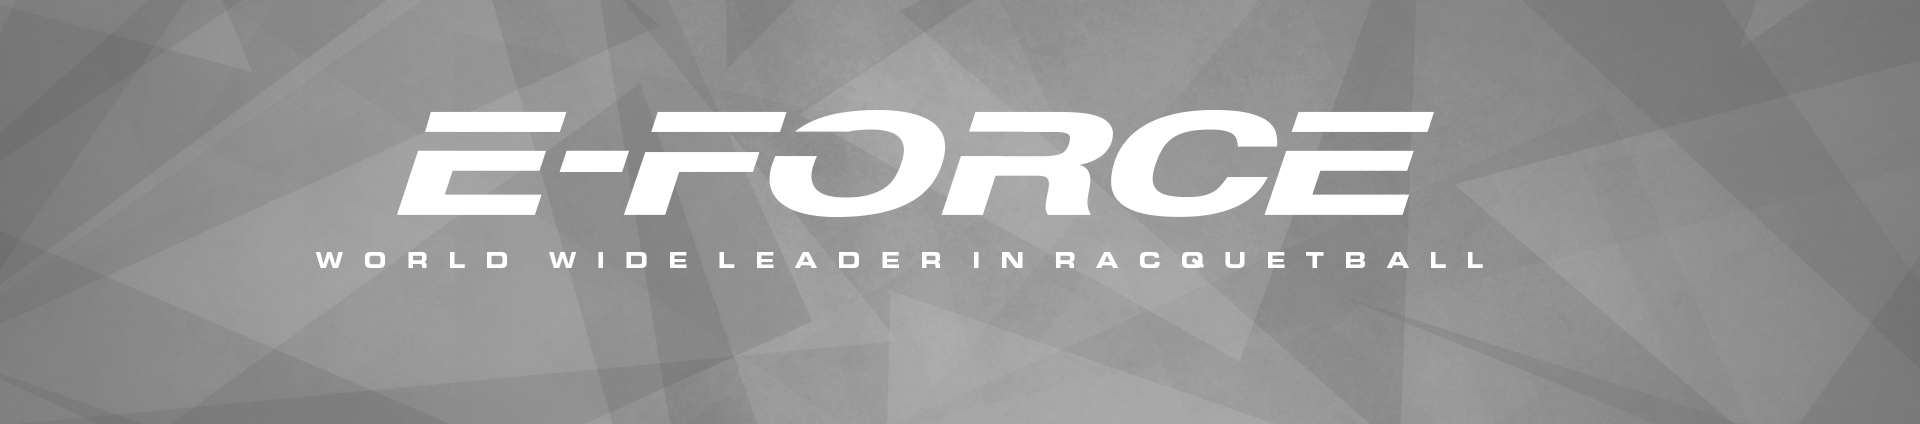 grey eforce logo banner